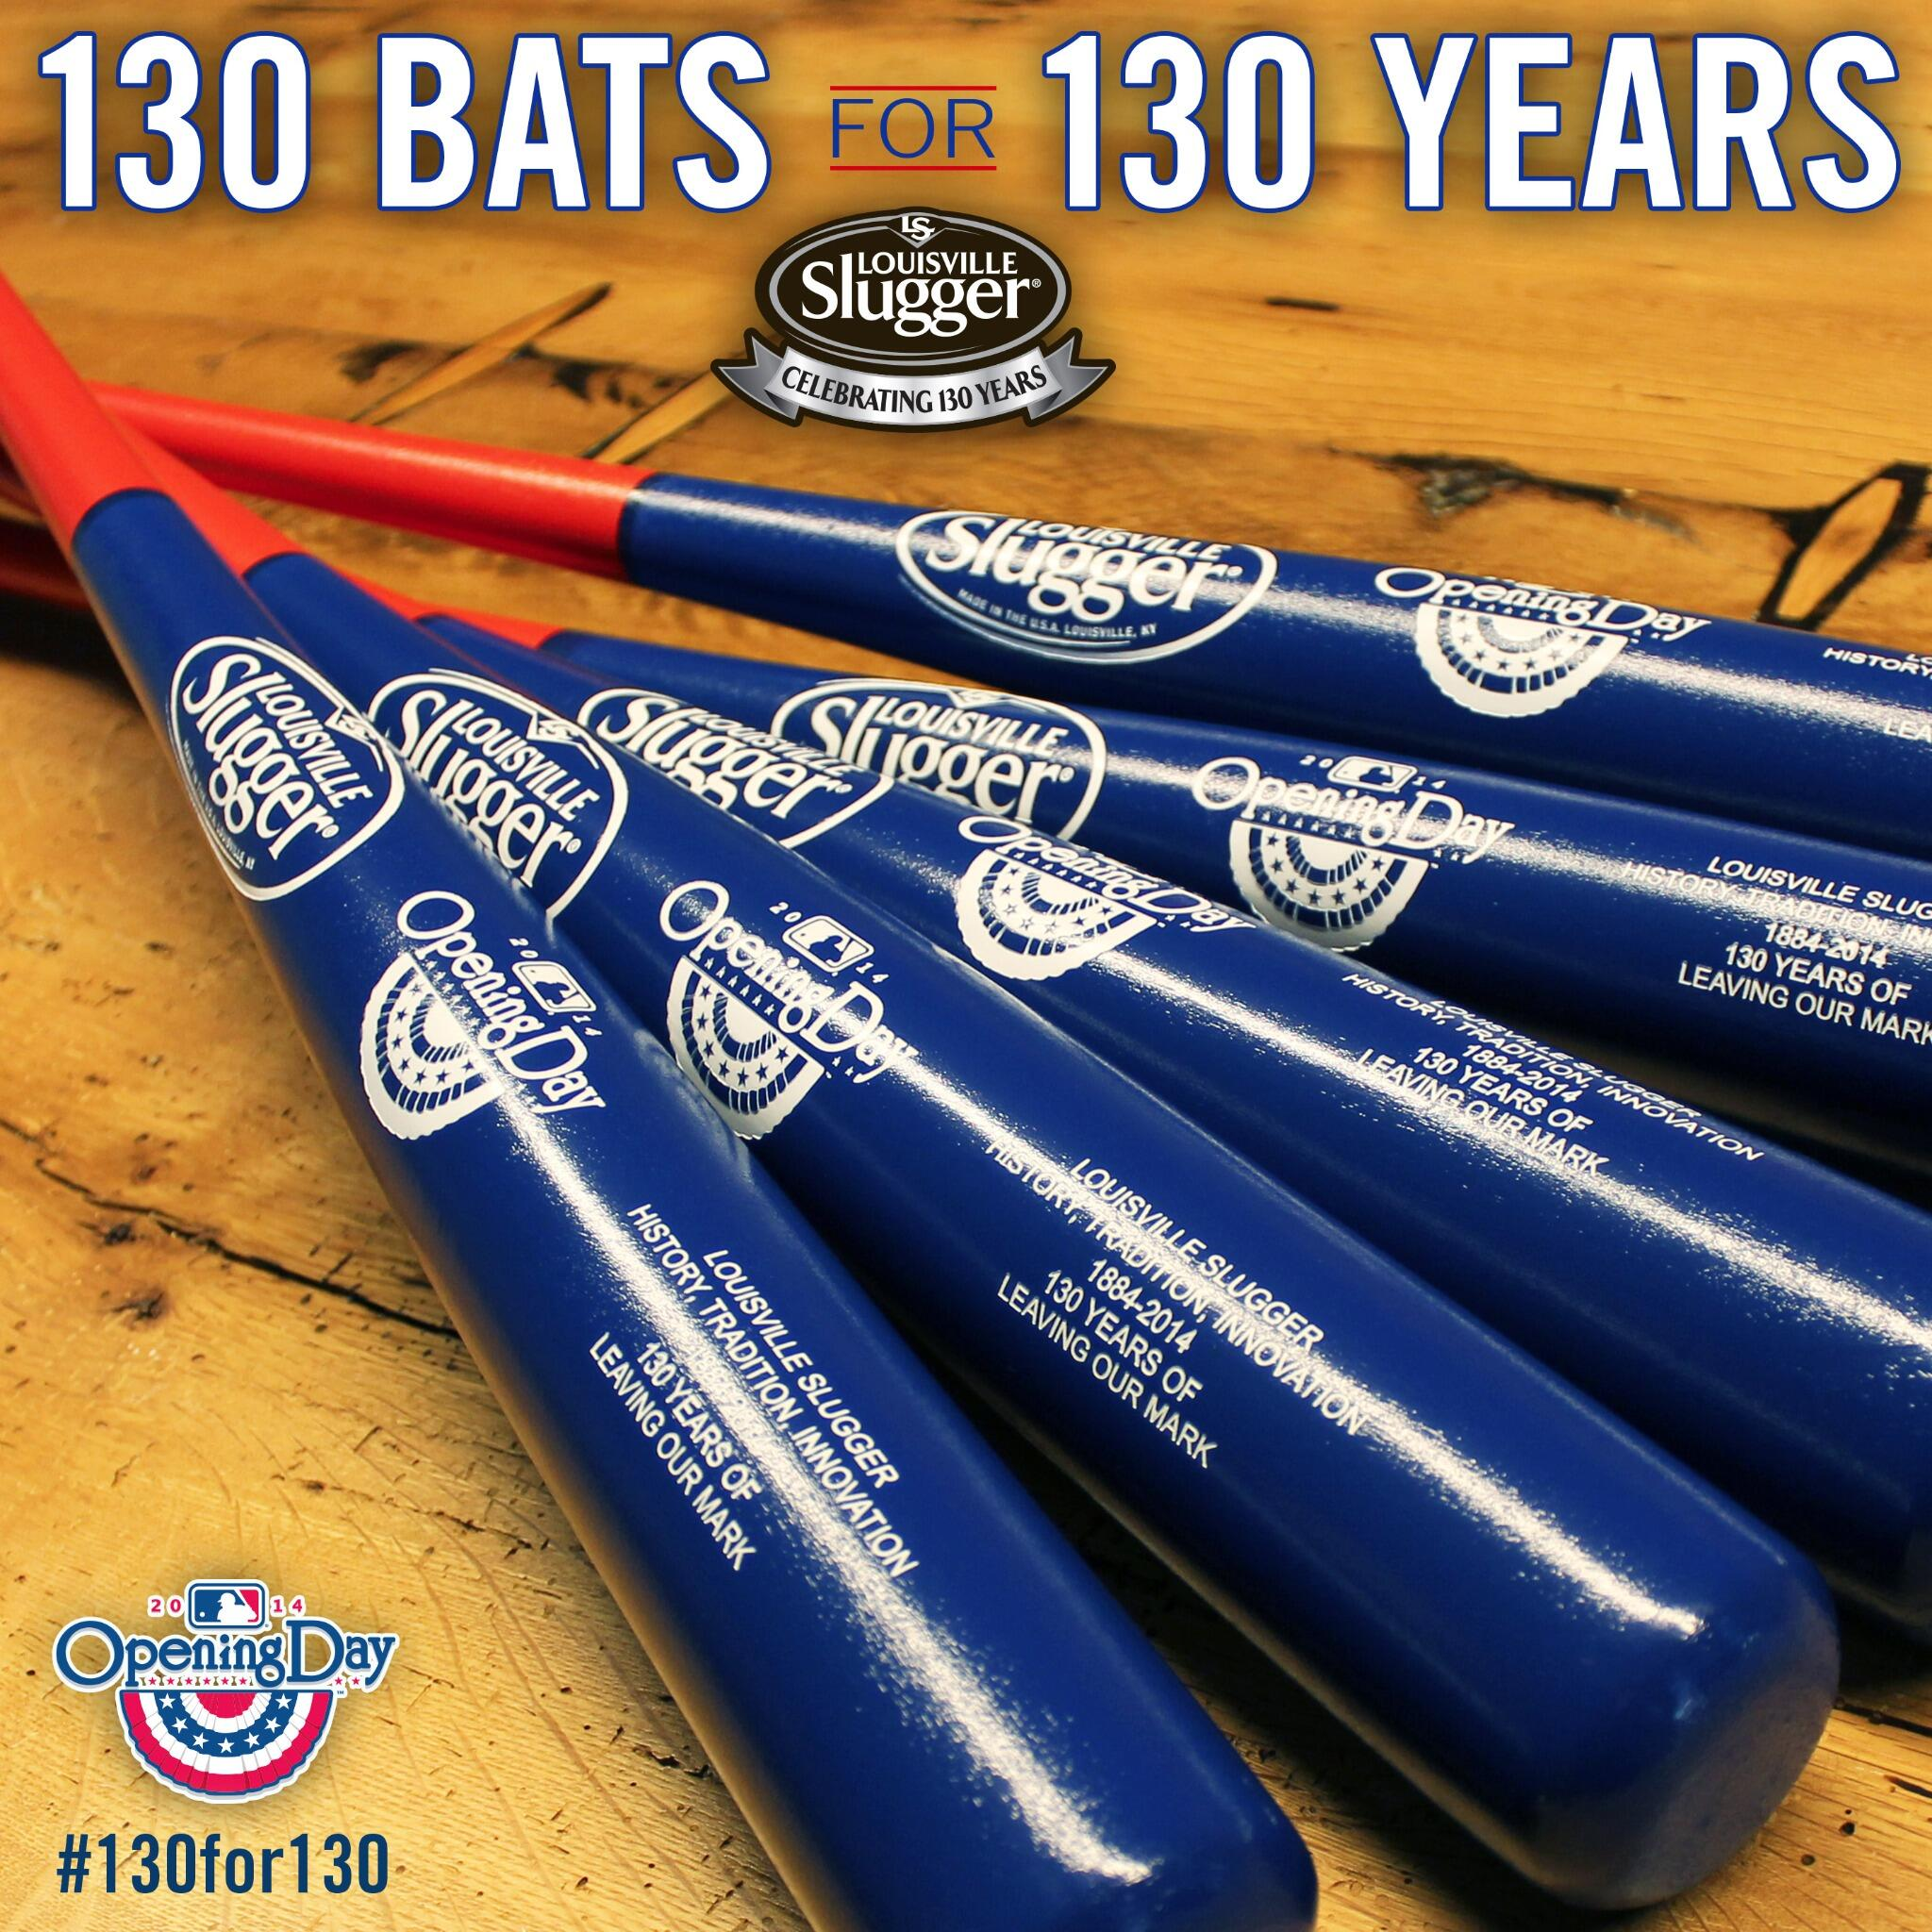 RT @MLBFanCave: Followers to RETWEET can win a limited edition #OpeningDay bat from @sluggernation. #130for130 http://t.co/XOHfW7qo4E